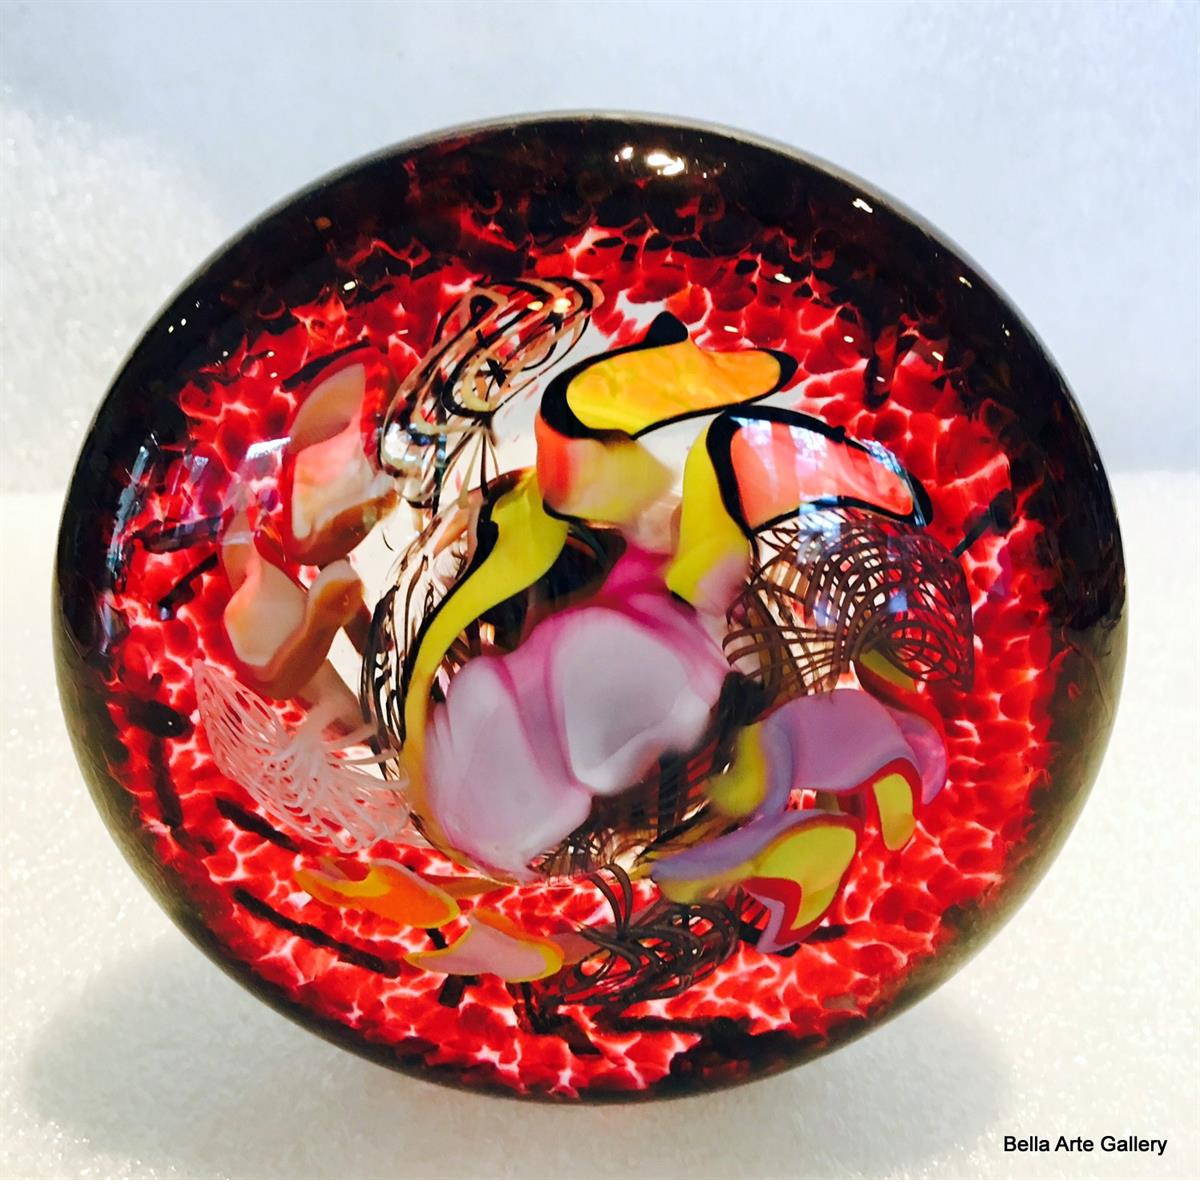 blown glass, paperweight, glass disk, glass artist Val Beck, multi-color glass, abstract glass, glass gift